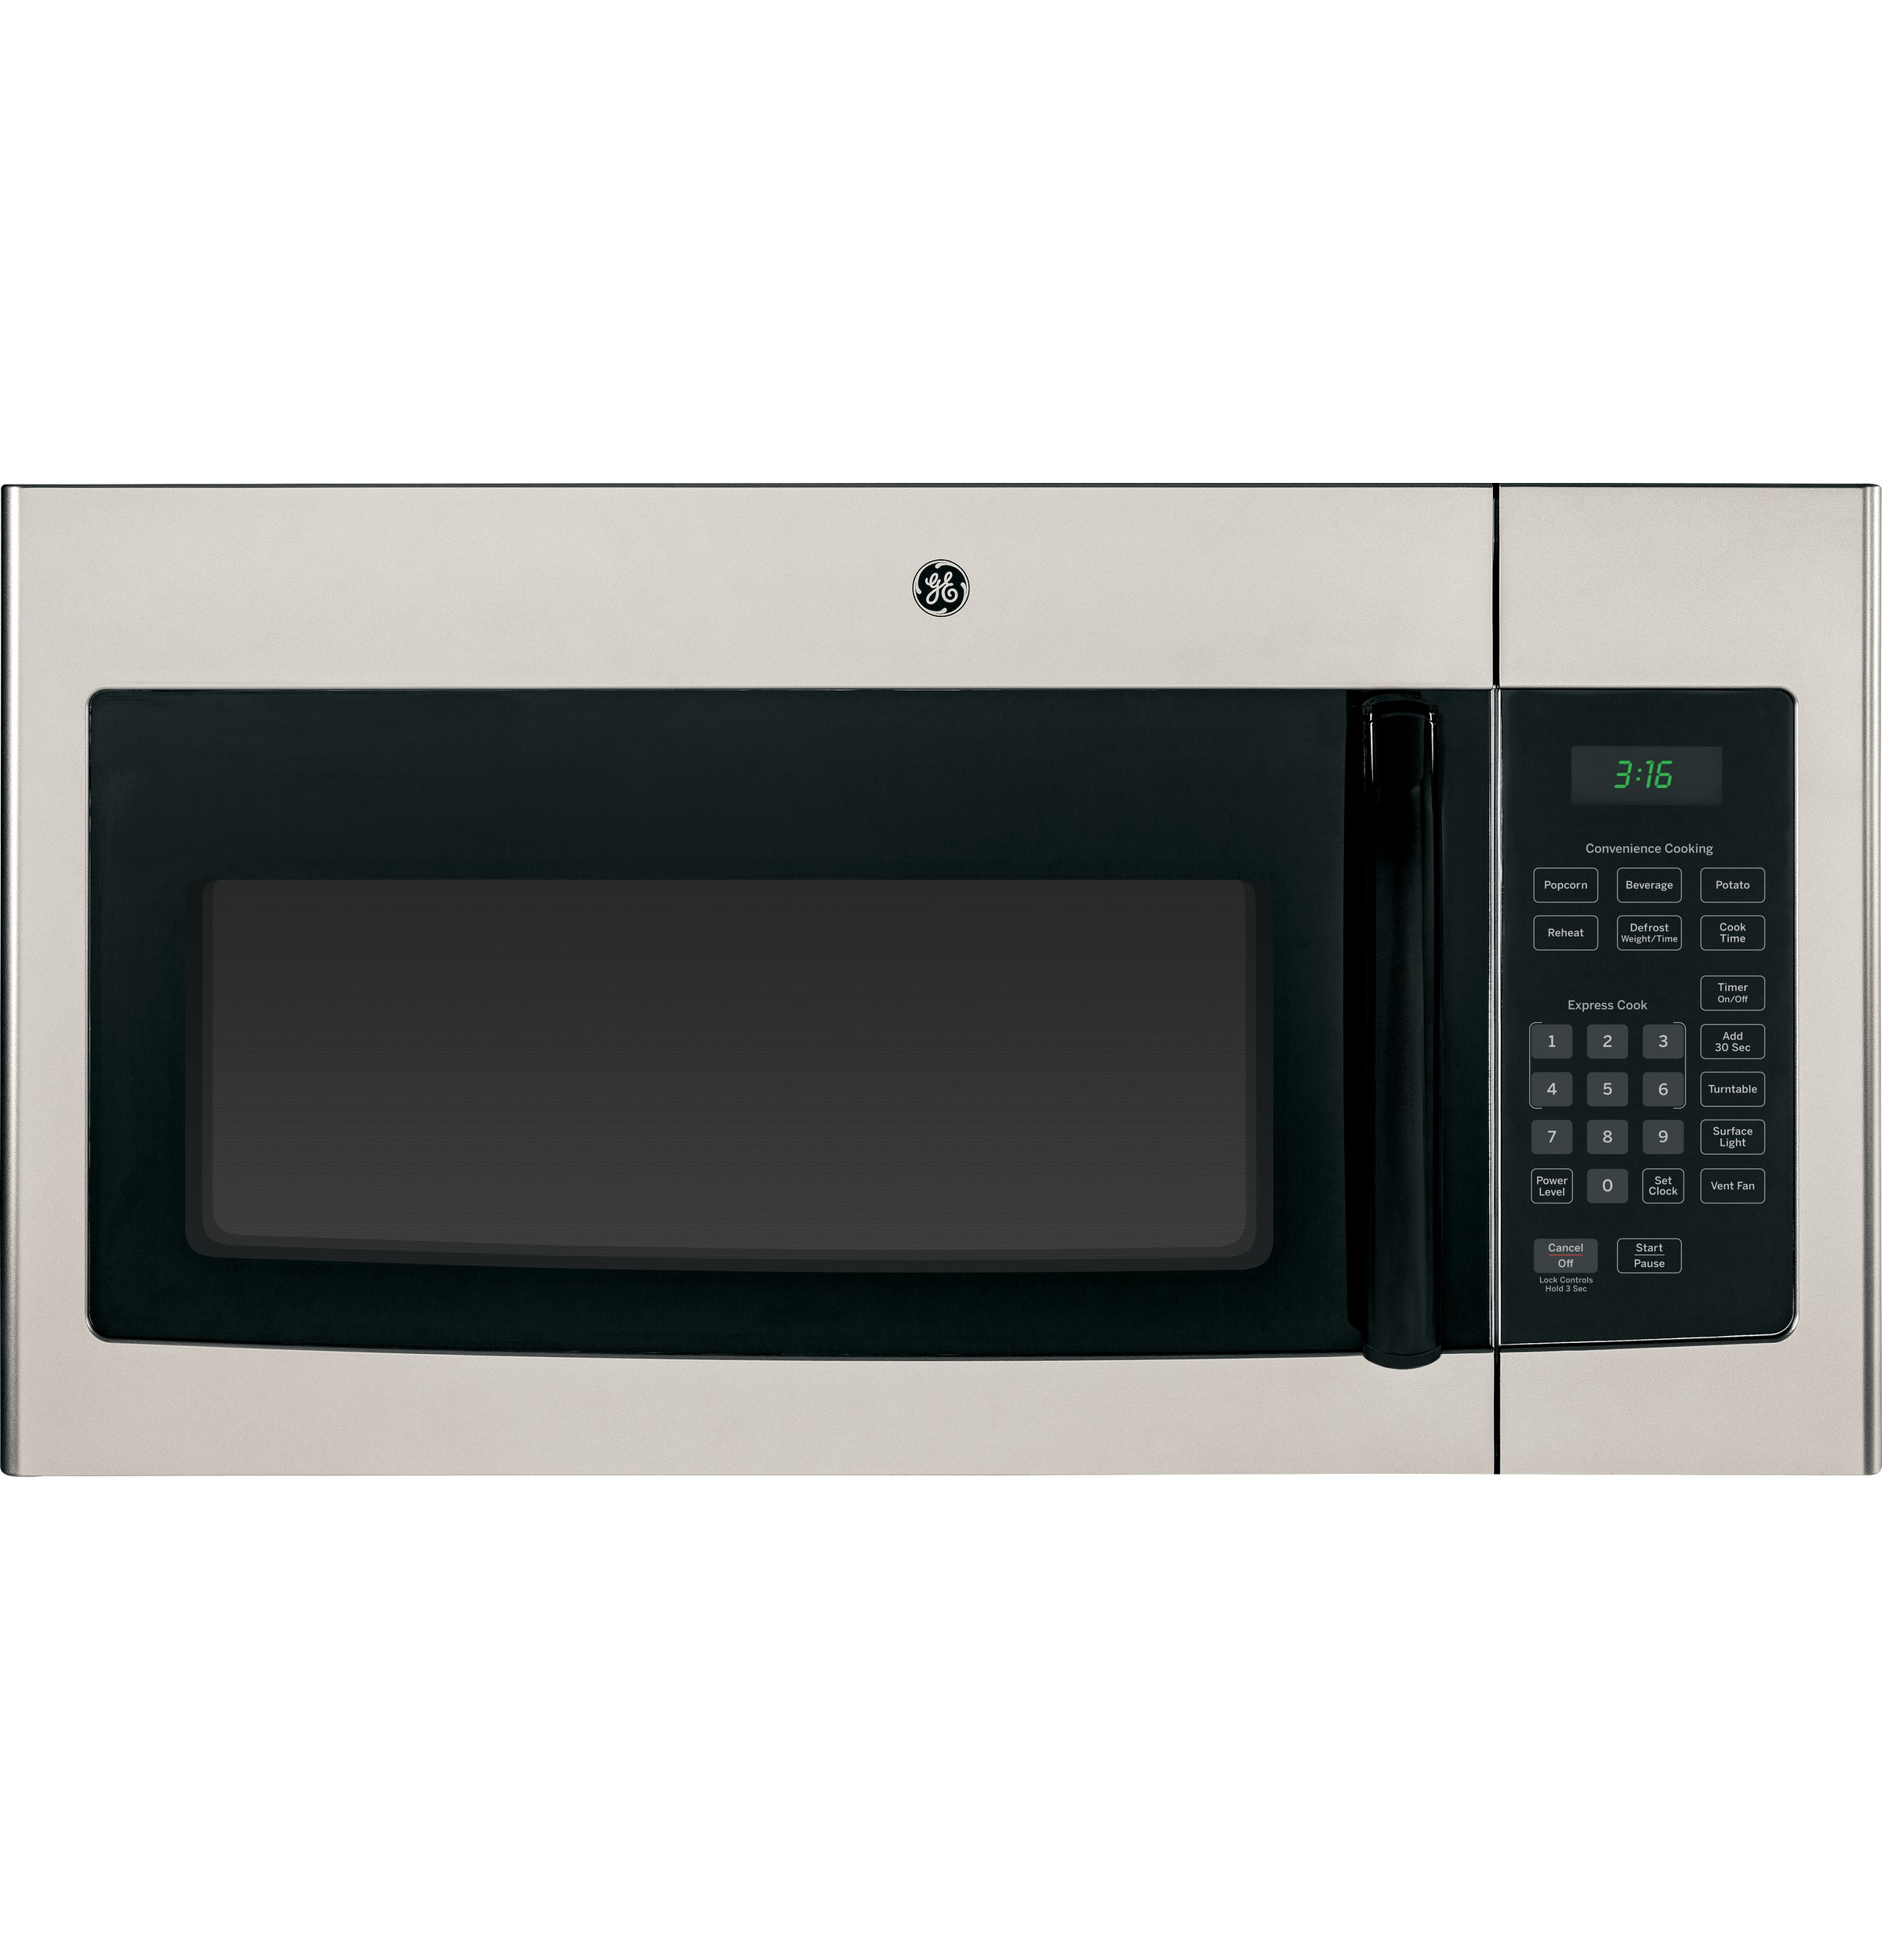 GE GE® 1.6 Cu. Ft. Over-the-Range Microwave Oven with Recirculating Venting